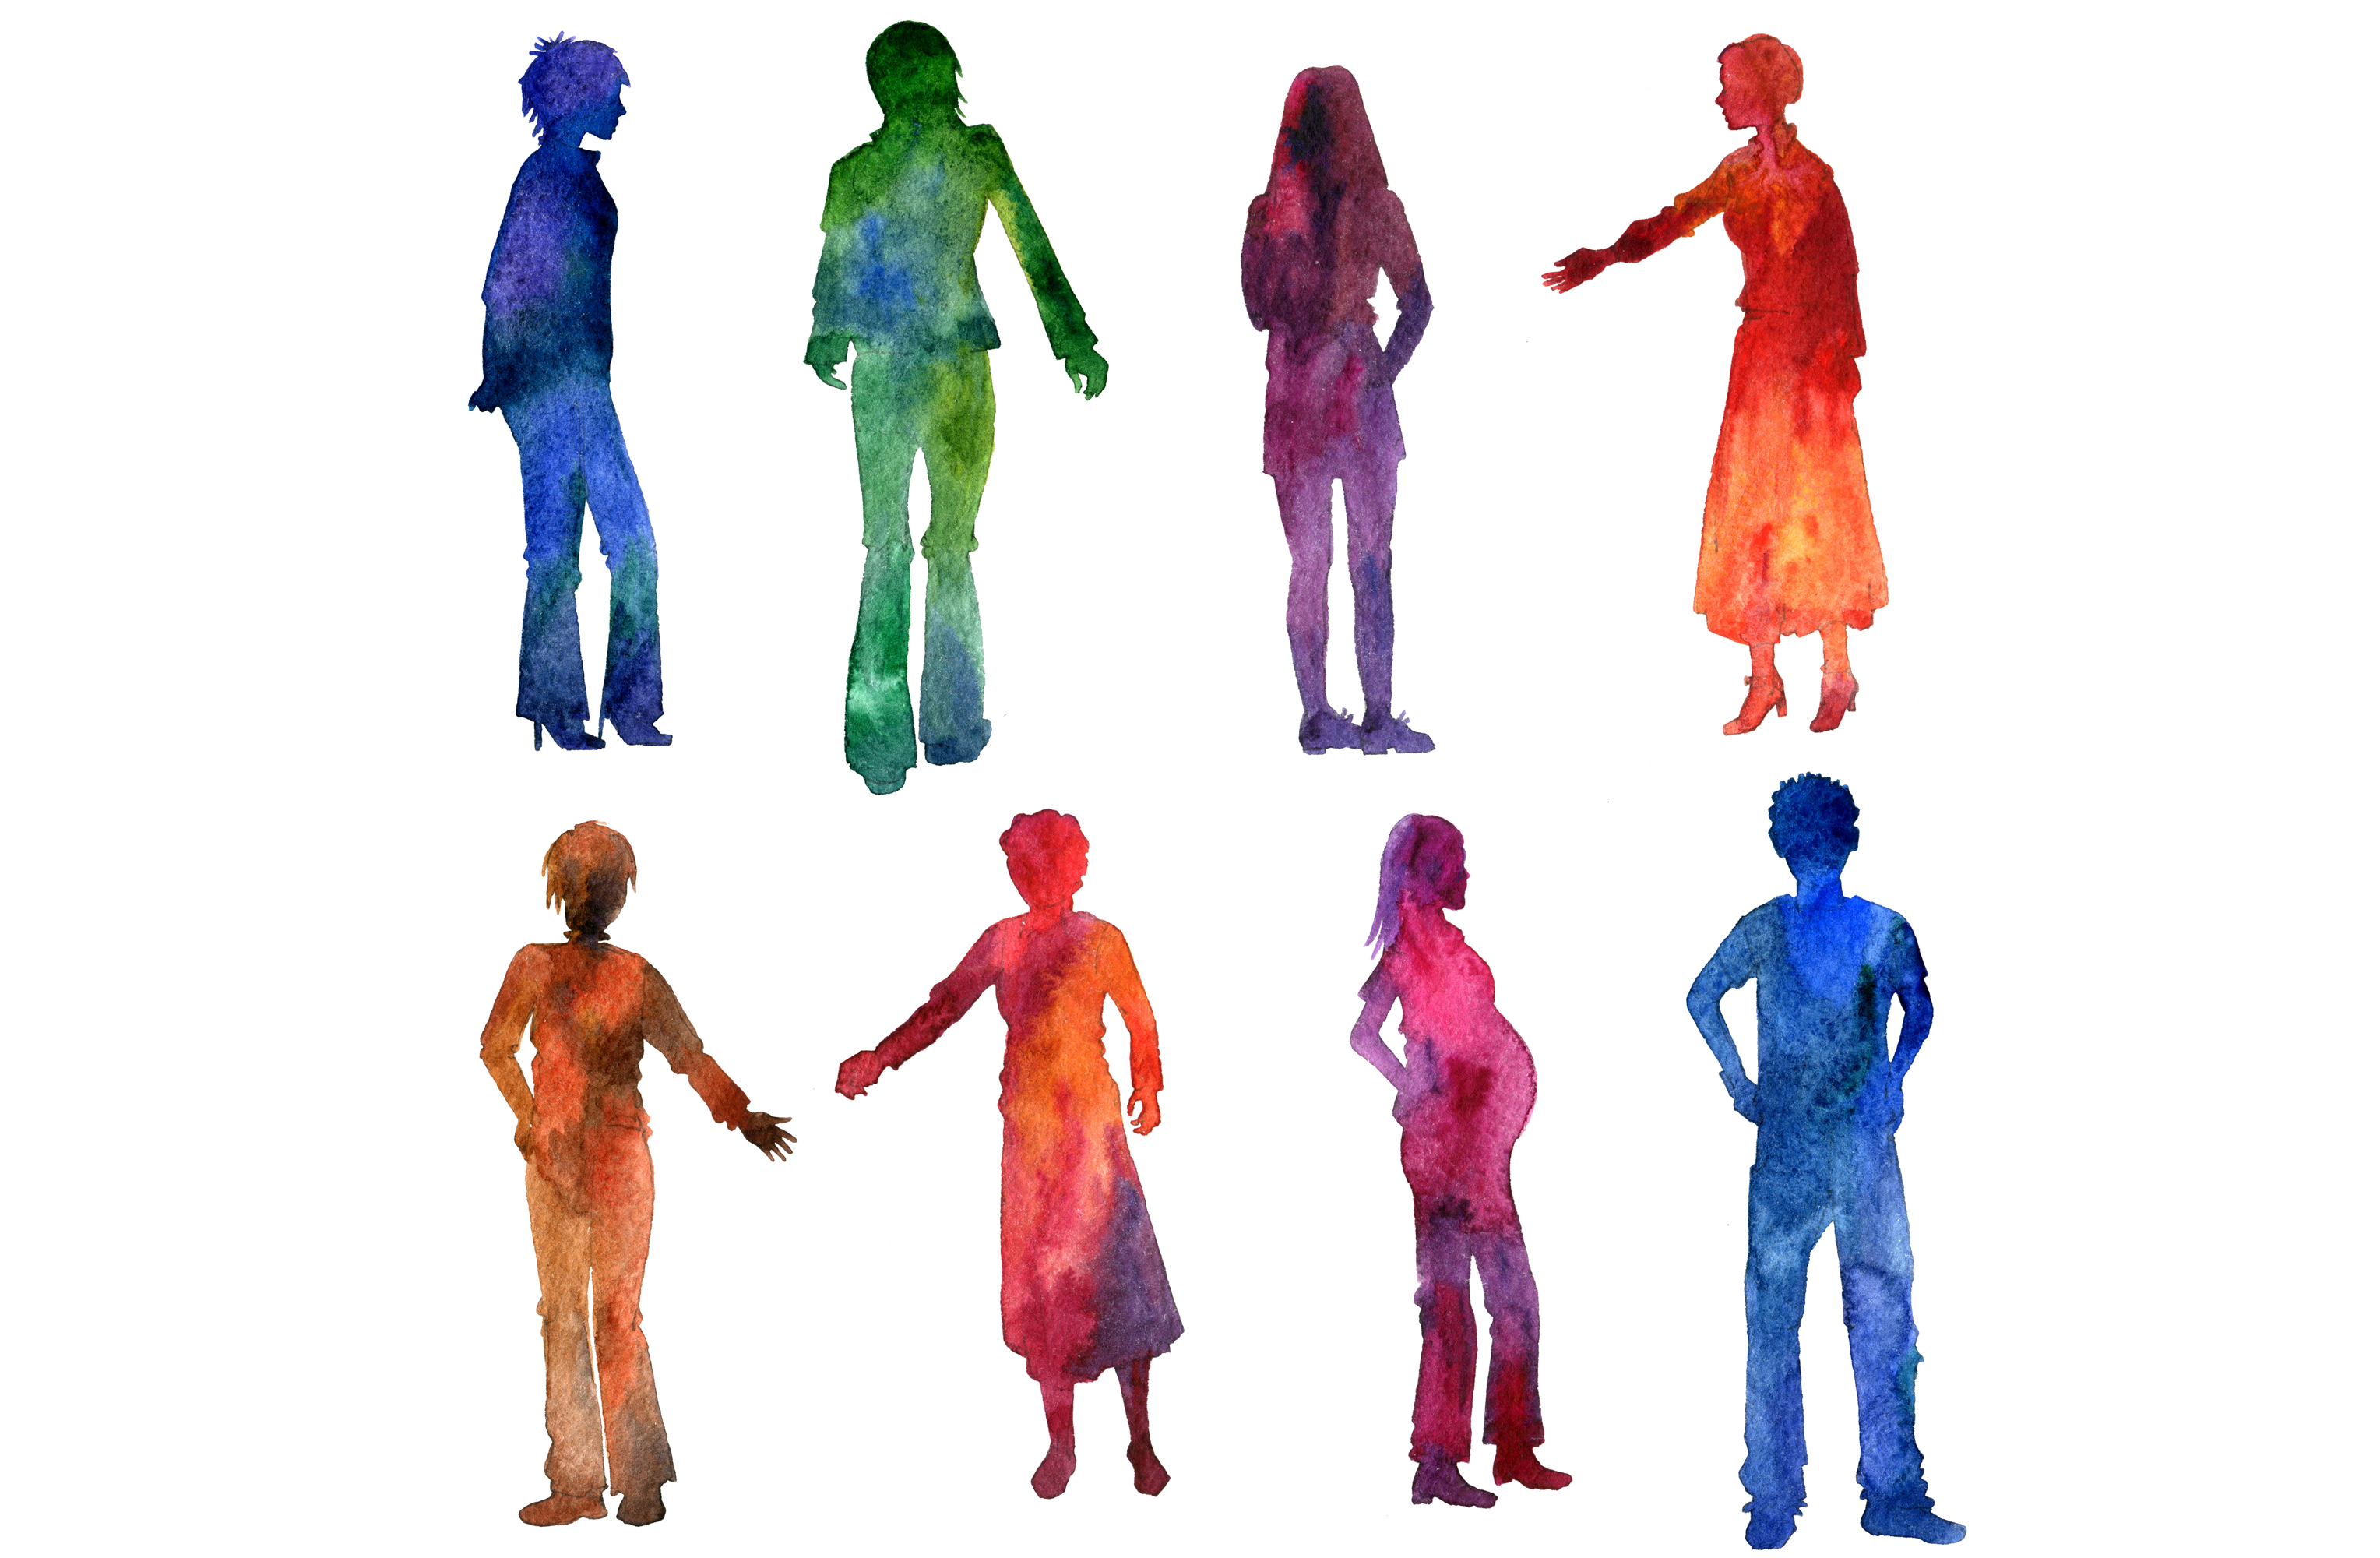 3056x2000 Watercolor People Silhouettes Additude